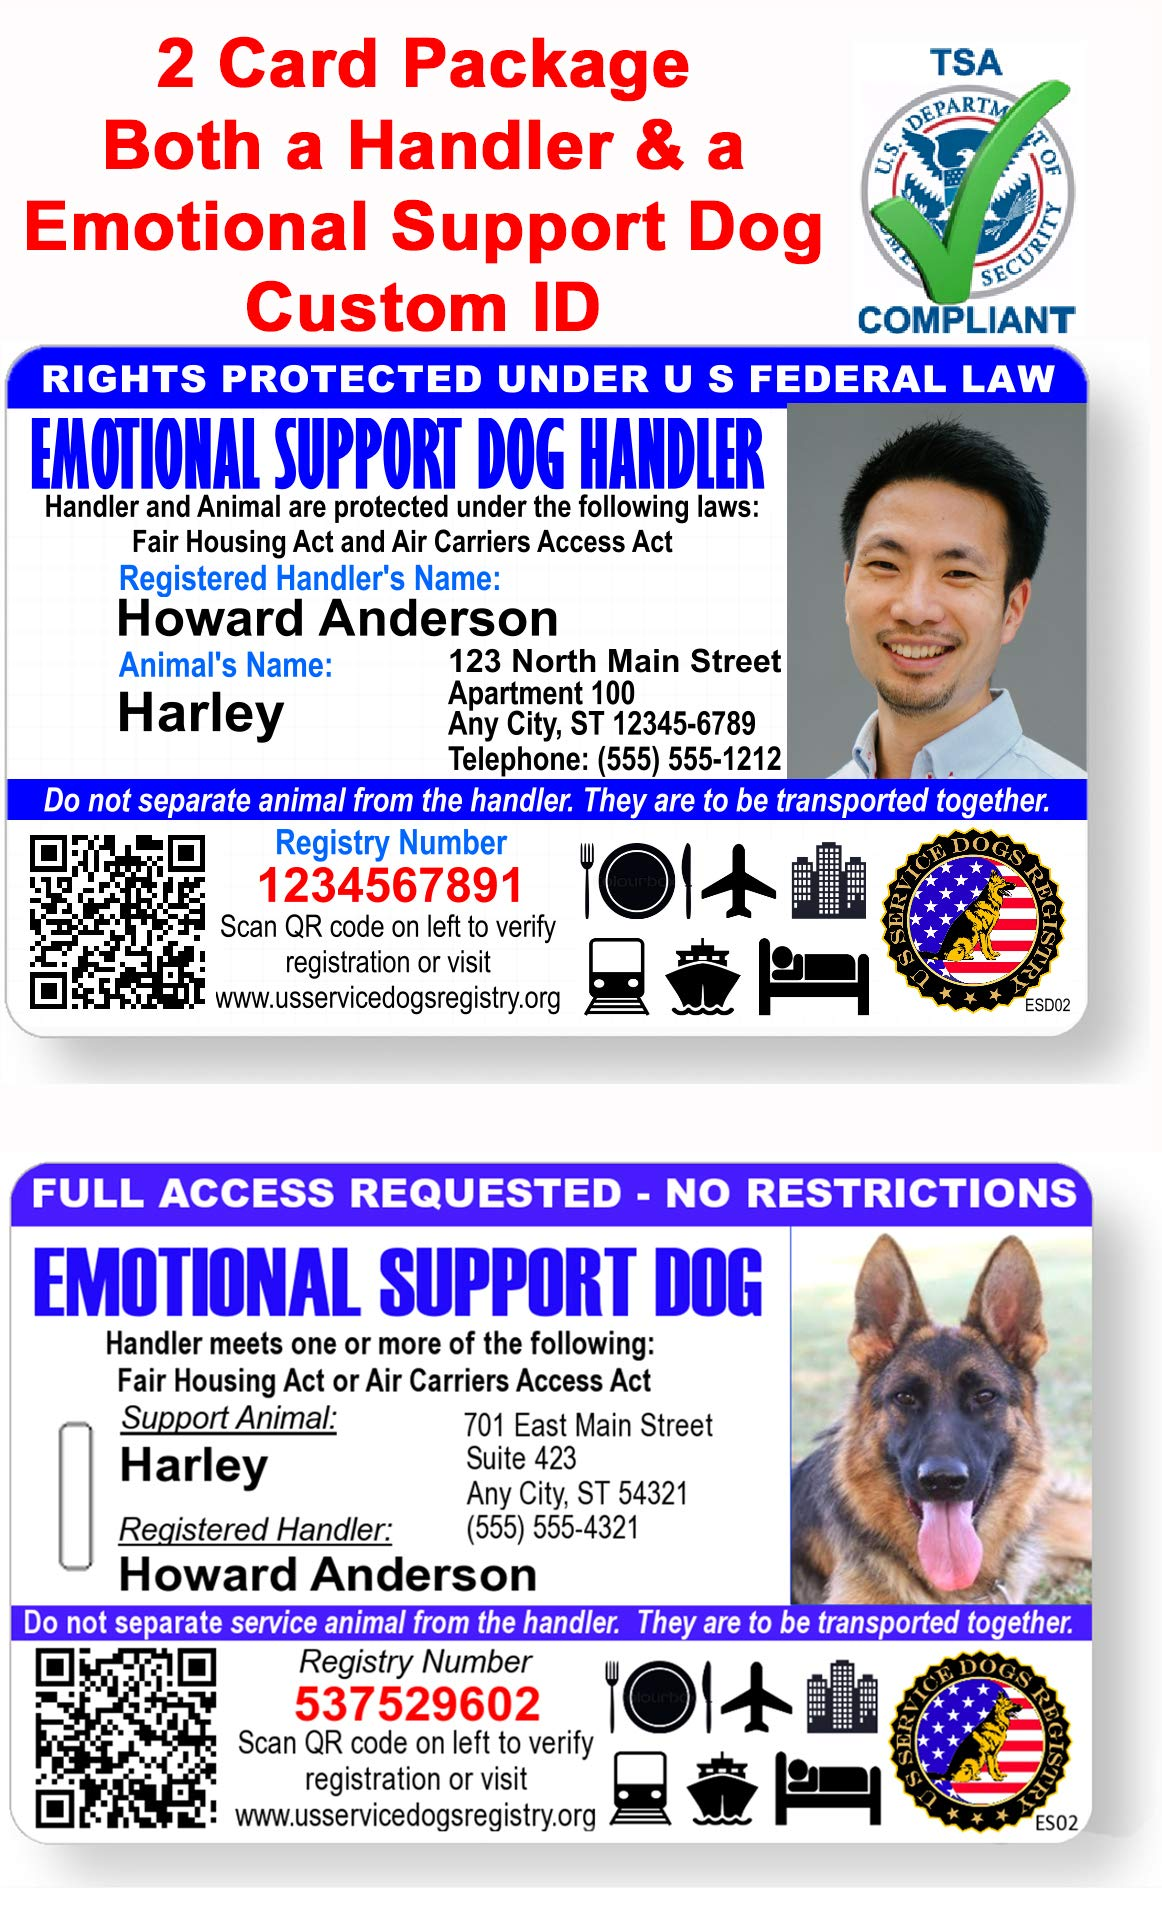 ust 4 Paws Custom Holographic QR Code Emotional Support Dog ID Card with Registration to Service Dogs Registry with Strap - Landscape Style (Emotional Support Dog and Handler Photo ID) by Just 4 Paws